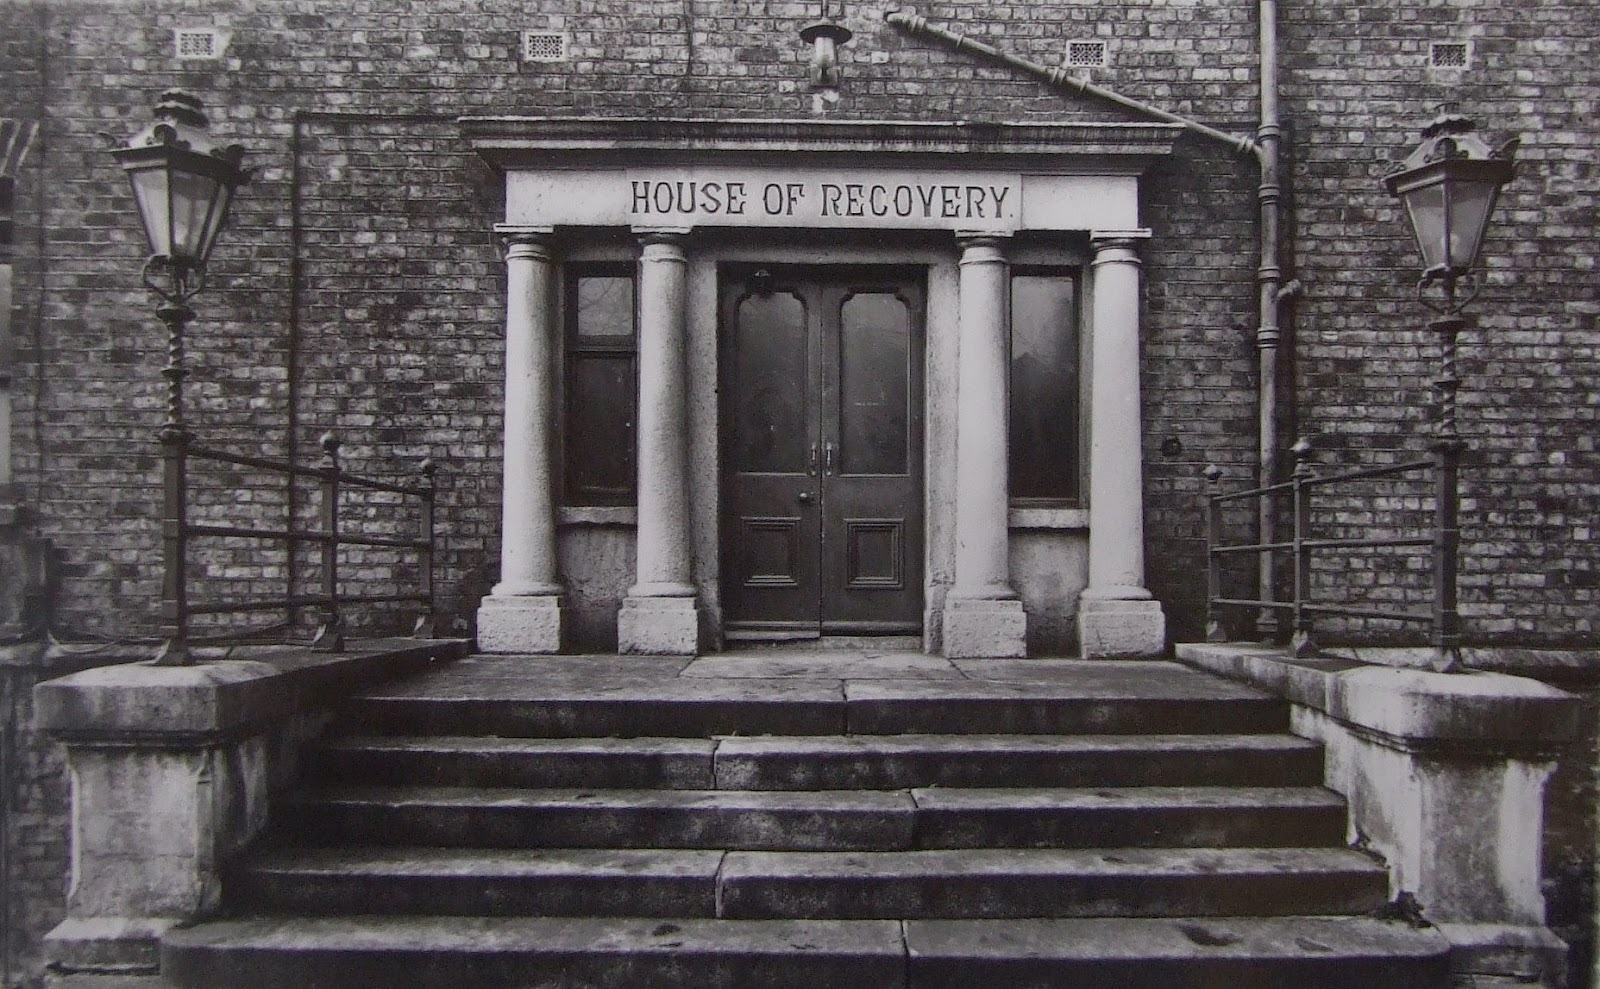 Original entrance to Cork Street Fever Hospital, erected in 1804